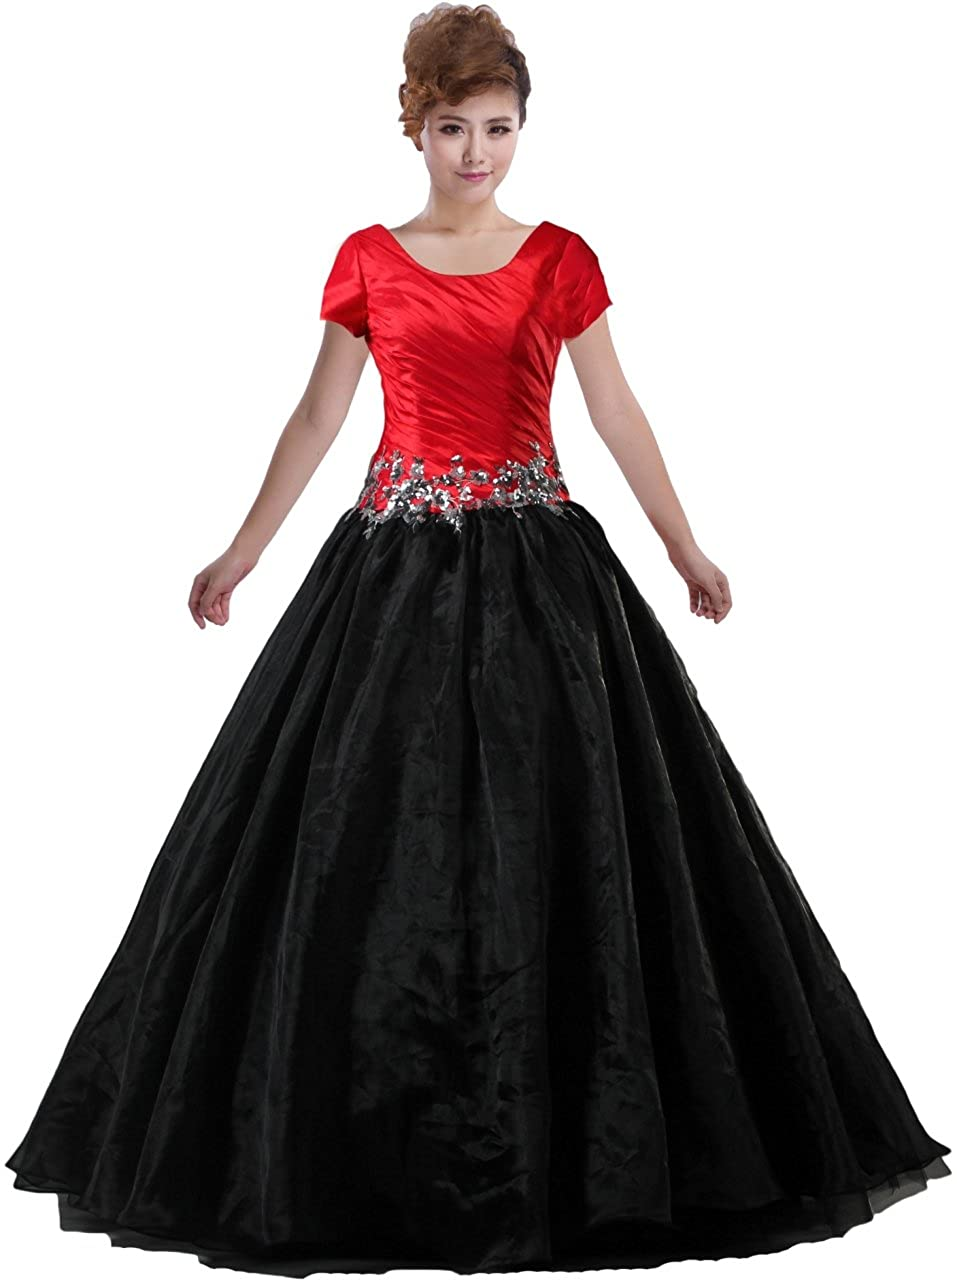 800faaa6ce7 Amazon.com  Unbranded  ANTS Women s Modest Long Prom Dresses Short Sleeve Evening  Gowns  Clothing